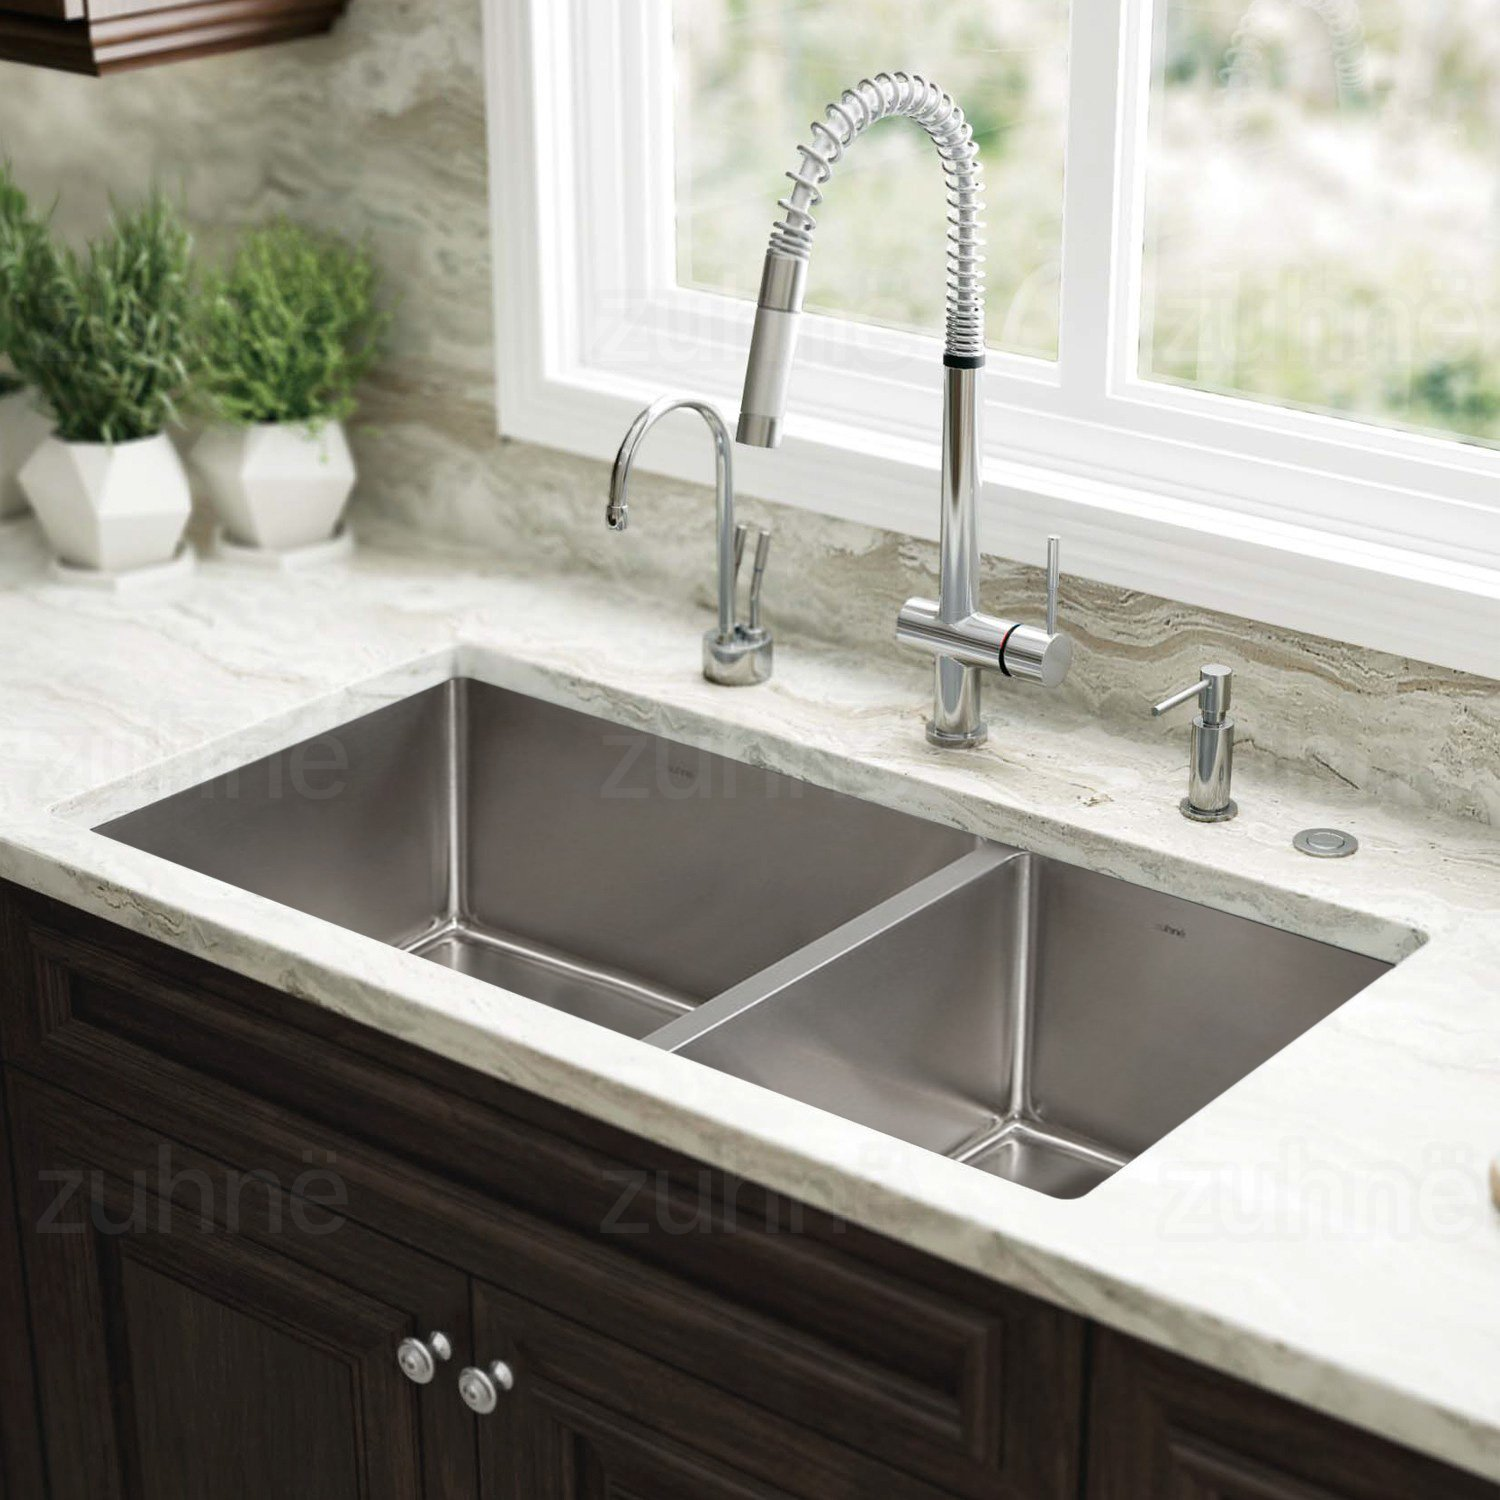 Kitchen Double Sinks Images of double kitchen sinks glacier bay all in one dual mount zuhne 32 inch undermount 60 40 deep double bowl 16 gauge stainless workwithnaturefo